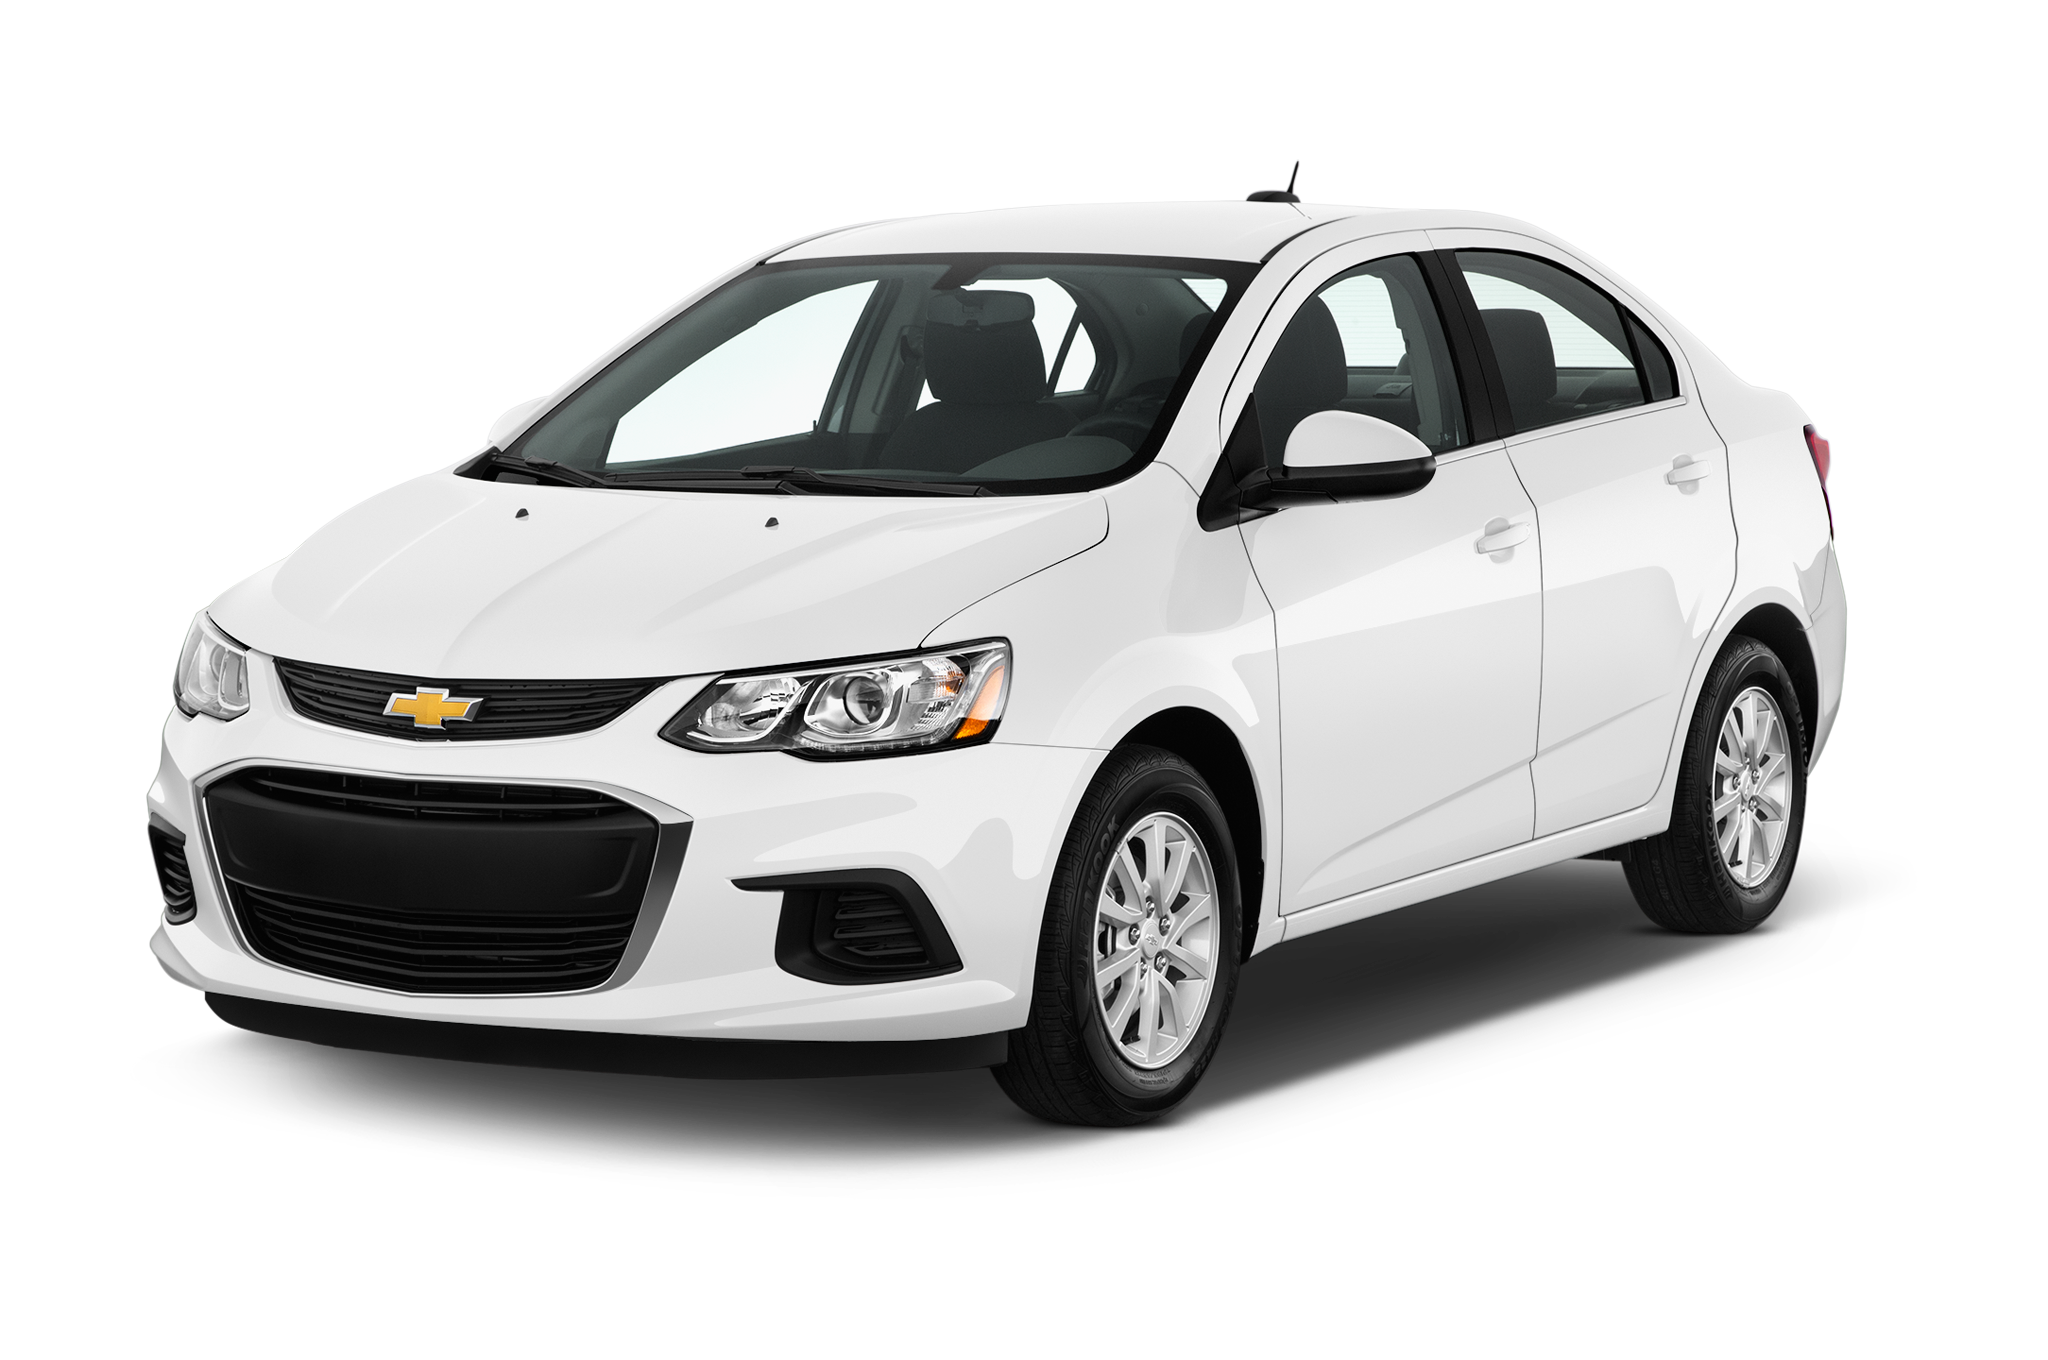 refreshed 2017 chevrolet sonic debuts at 2016 new york auto show. Black Bedroom Furniture Sets. Home Design Ideas